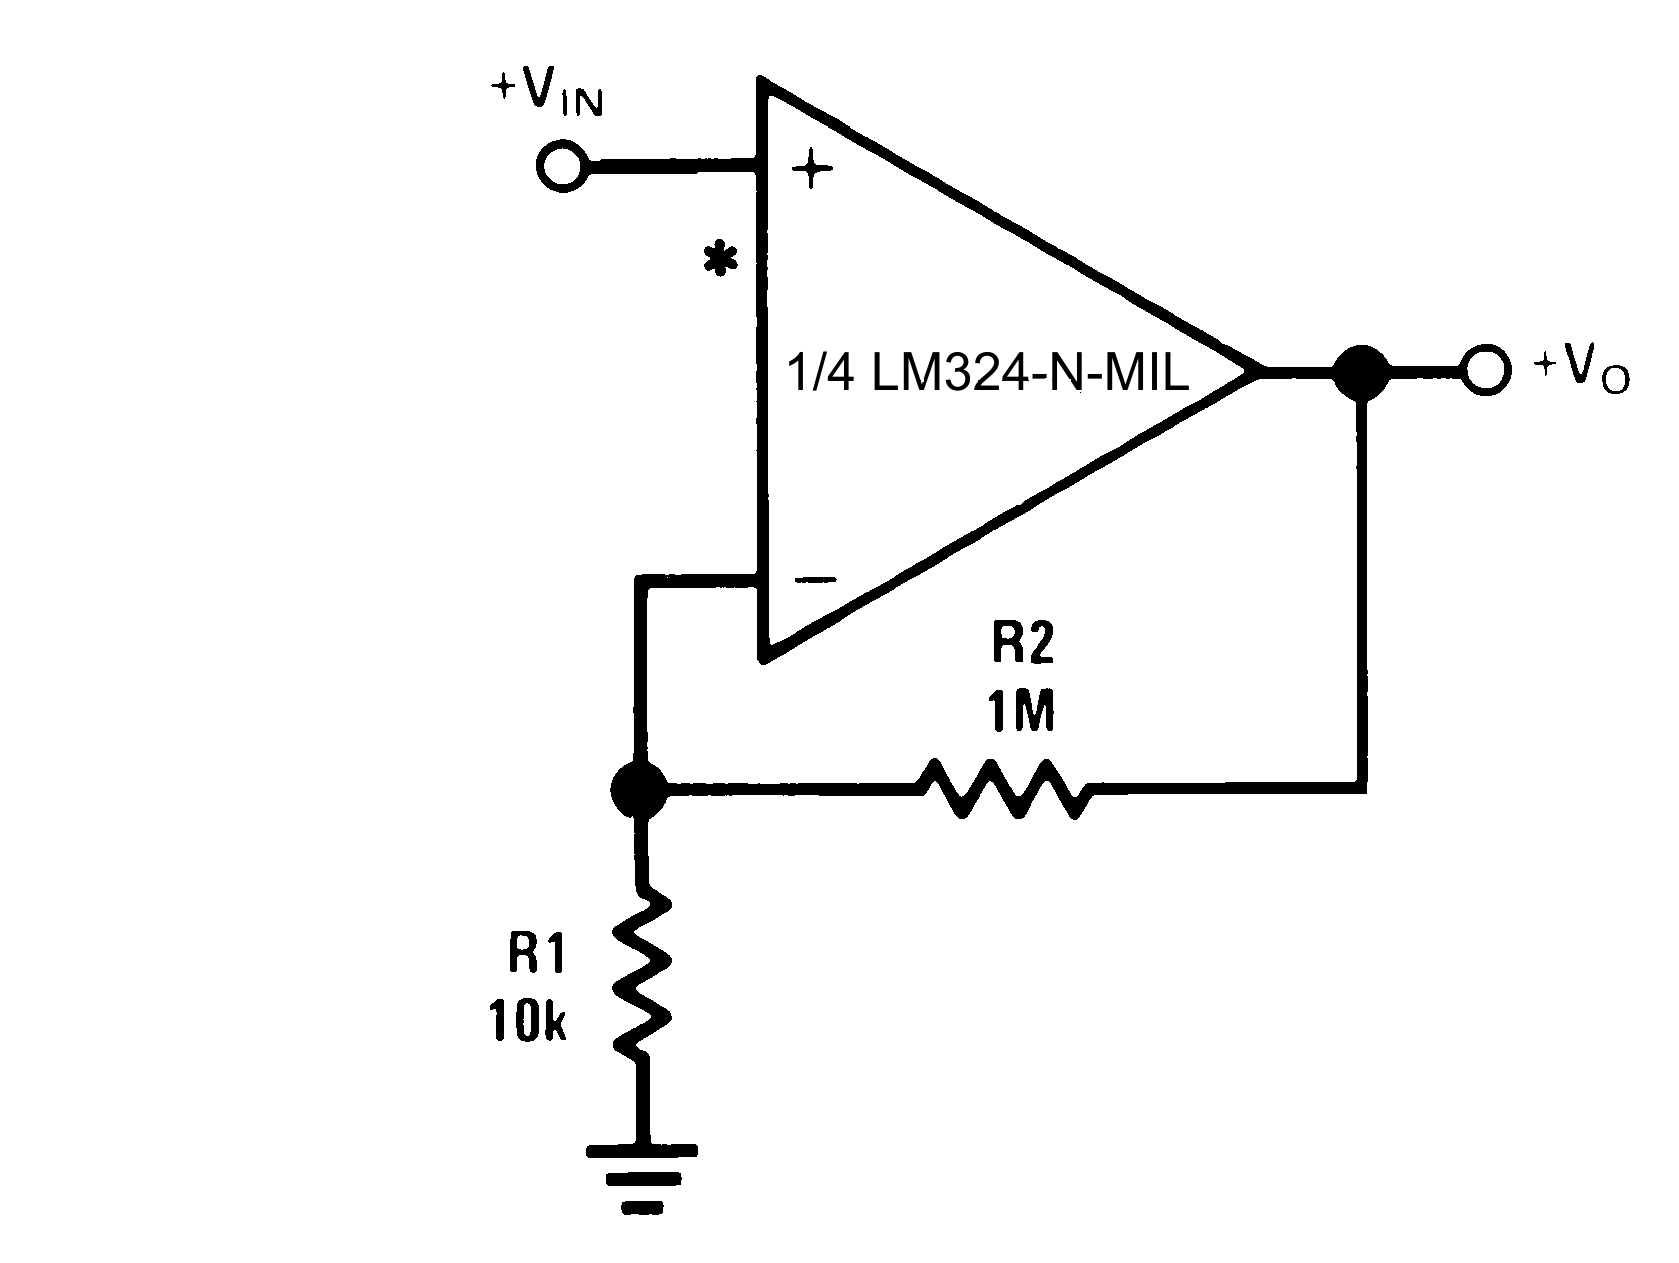 Lm324 N Mil Non Inverting Ac Amplifier Circuit Diagram 821 Dc Gain 0 V Input Output